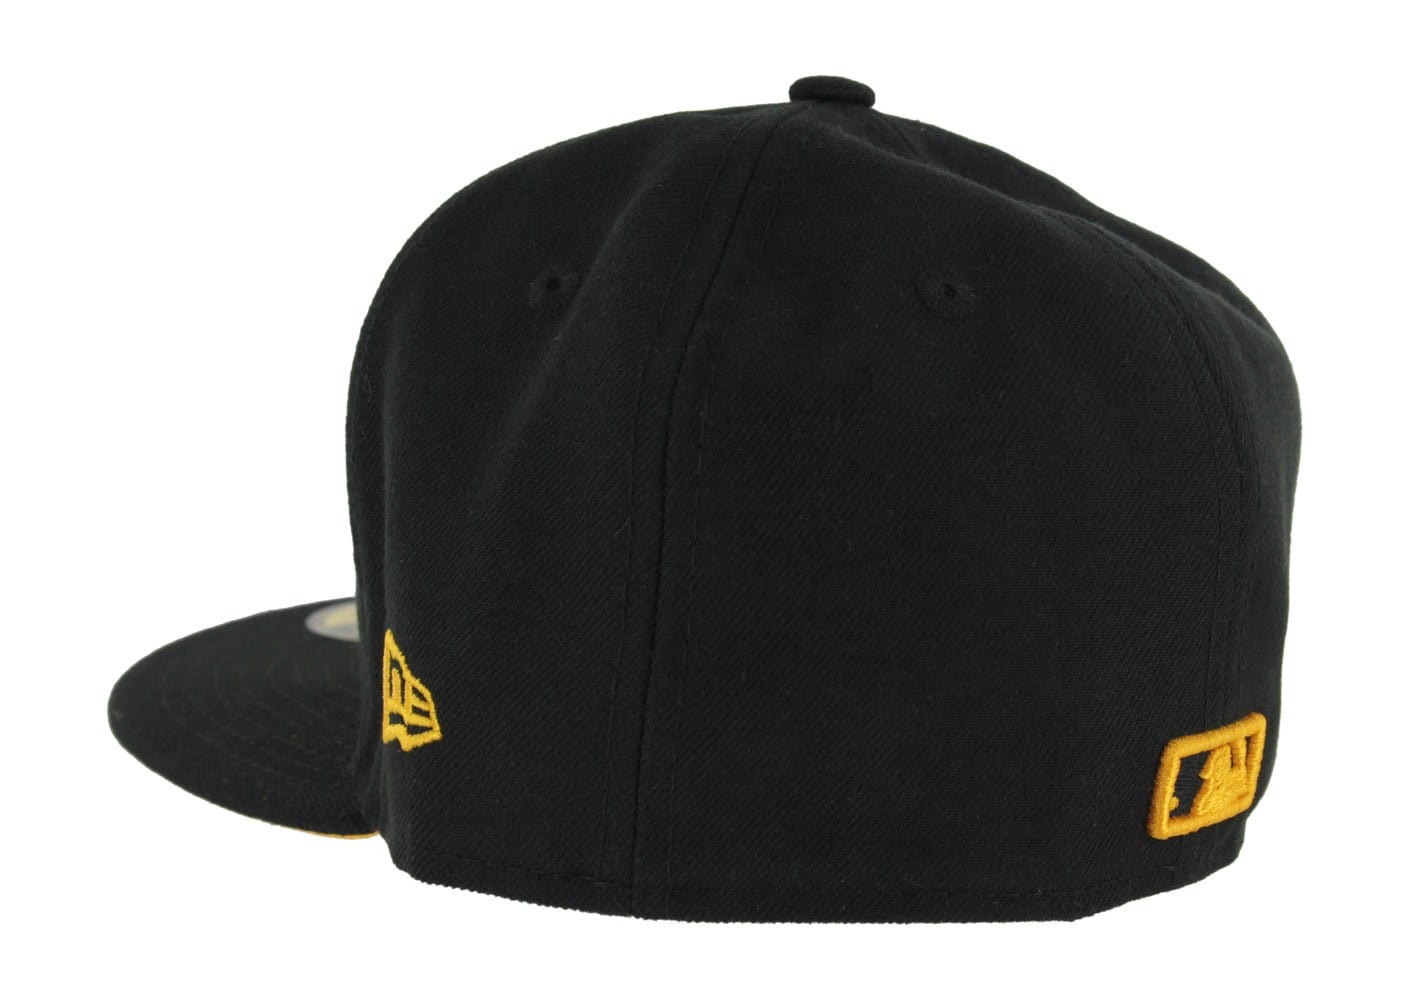 new era casquette 59 50 junction ny noire chaussures. Black Bedroom Furniture Sets. Home Design Ideas